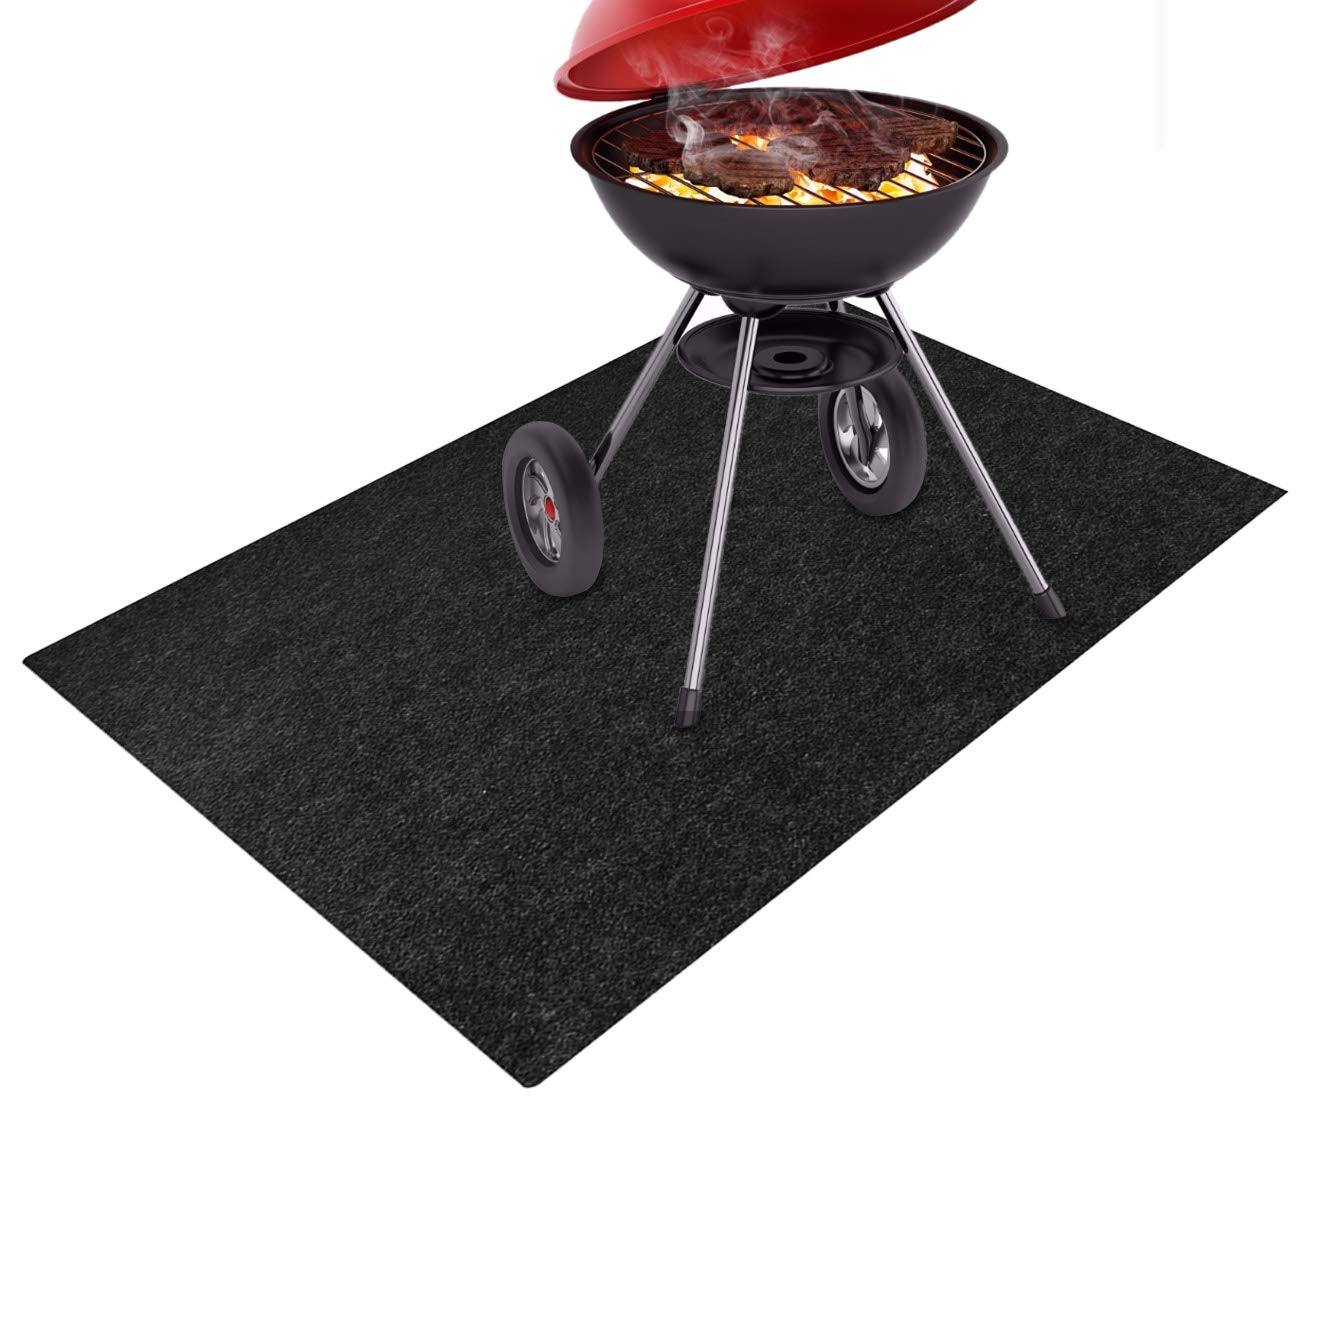 Together-life Gas Grill Splatter Mat, Fireproof Heat Resistant Non Stick BBQ Patio Protector Grilling Gear, Backyard Floor Protective Rug (72'' x 36'') by Together-life